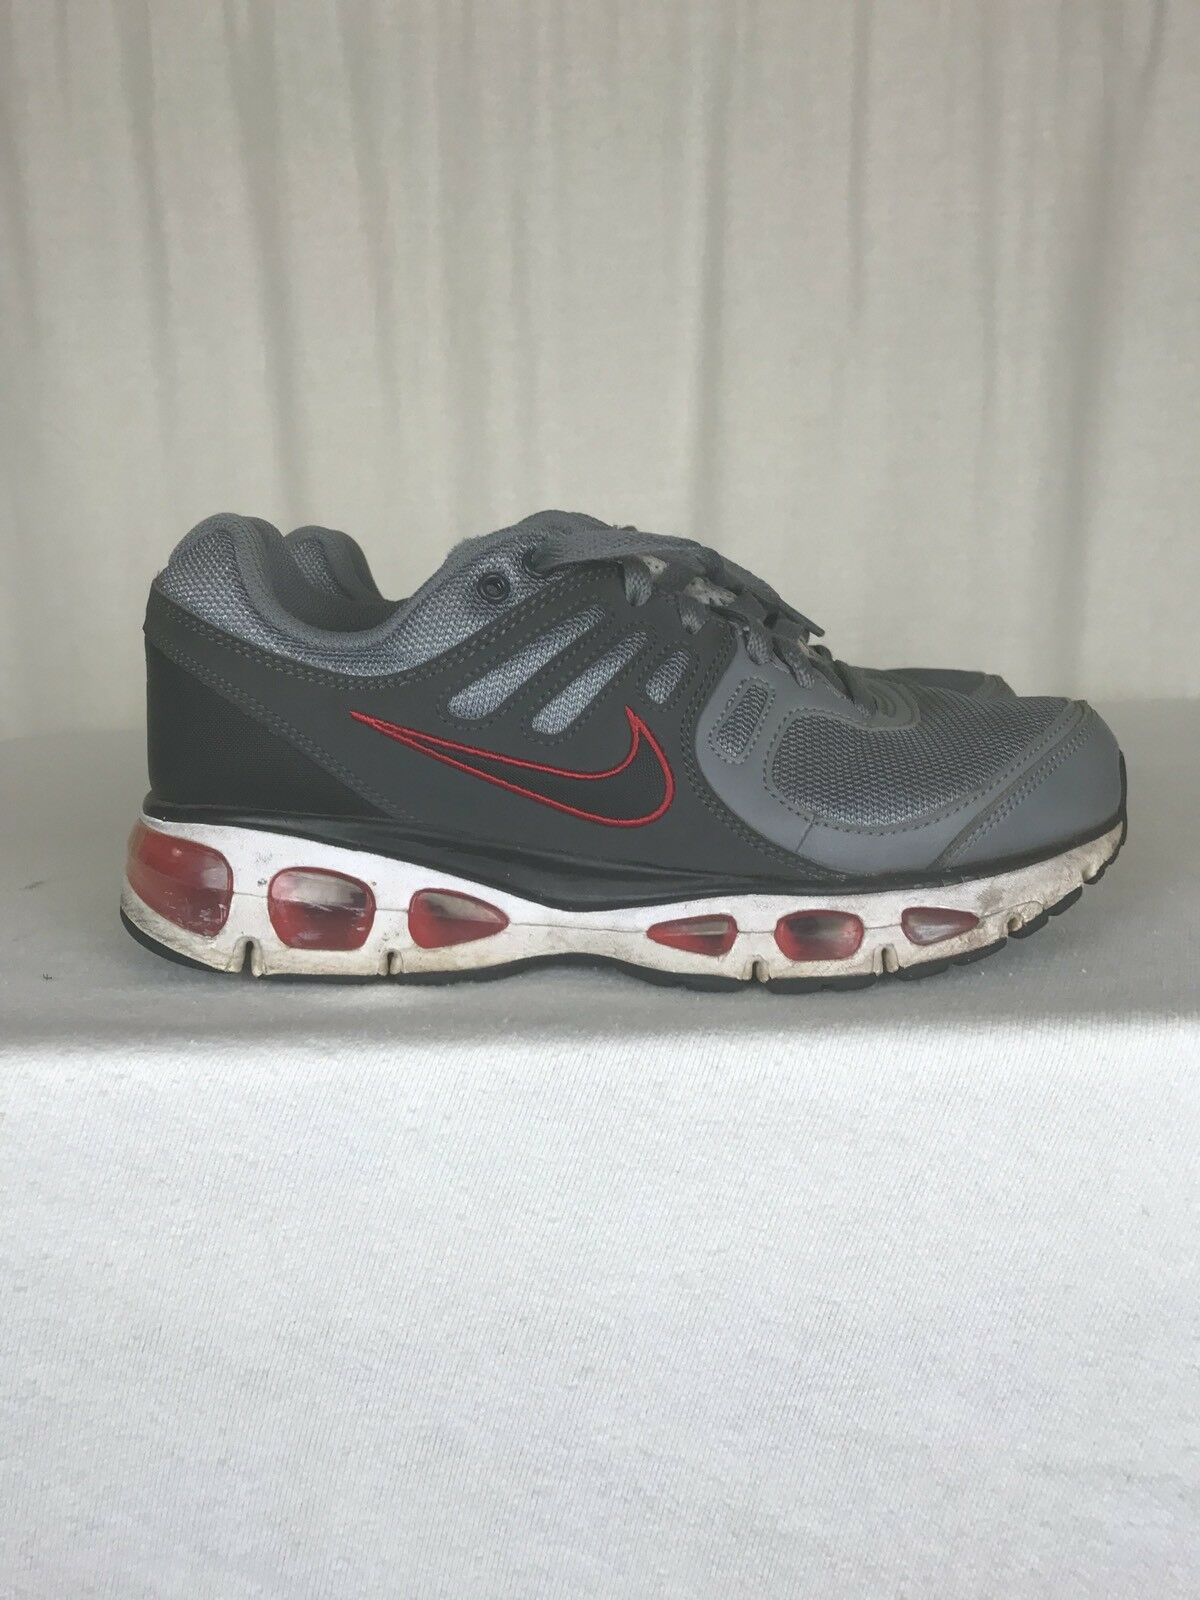 The latest discount shoes for men and women NIKE AIR MAX TAILWIND 2010 RUNNING SHOES SIZE 6 Grade School 454504-008 E